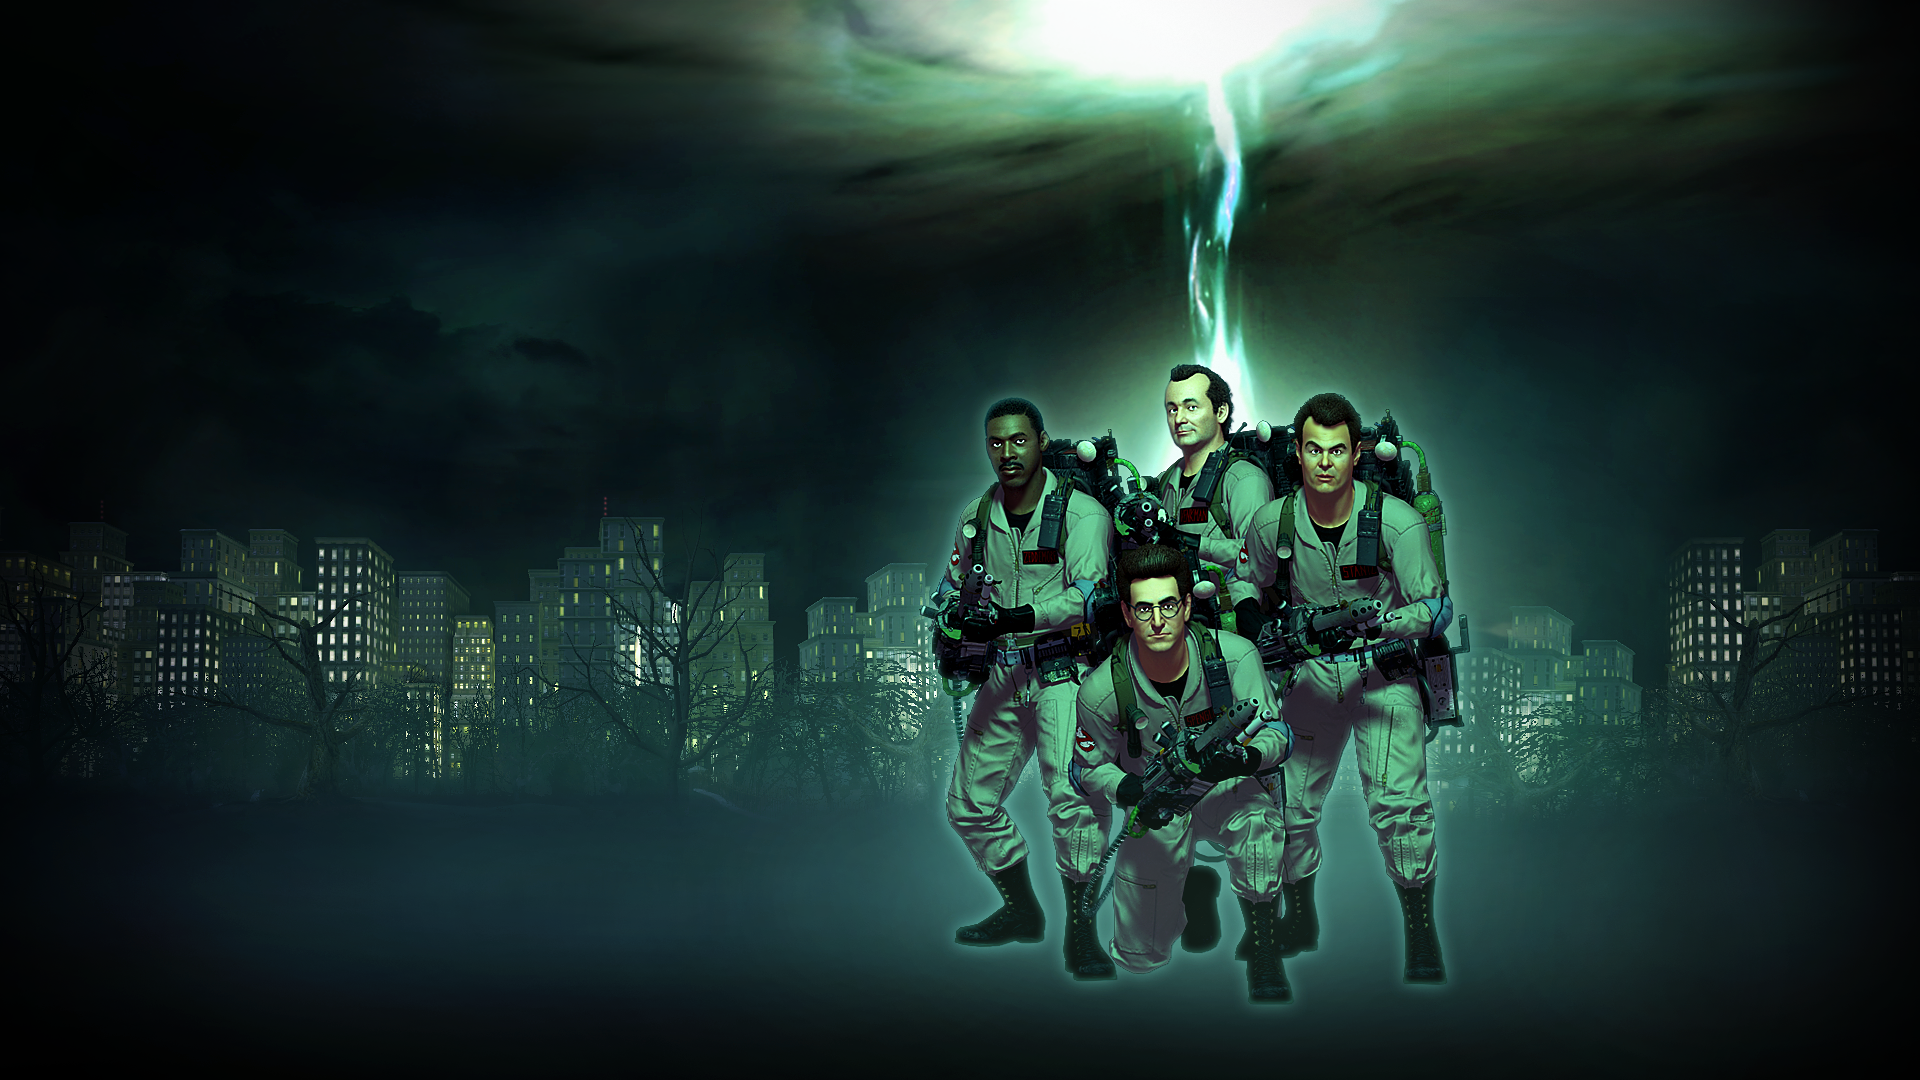 41 ghostbusters hd wallpapers backgrounds wallpaper abyss - Ghostbusters wallpaper ...